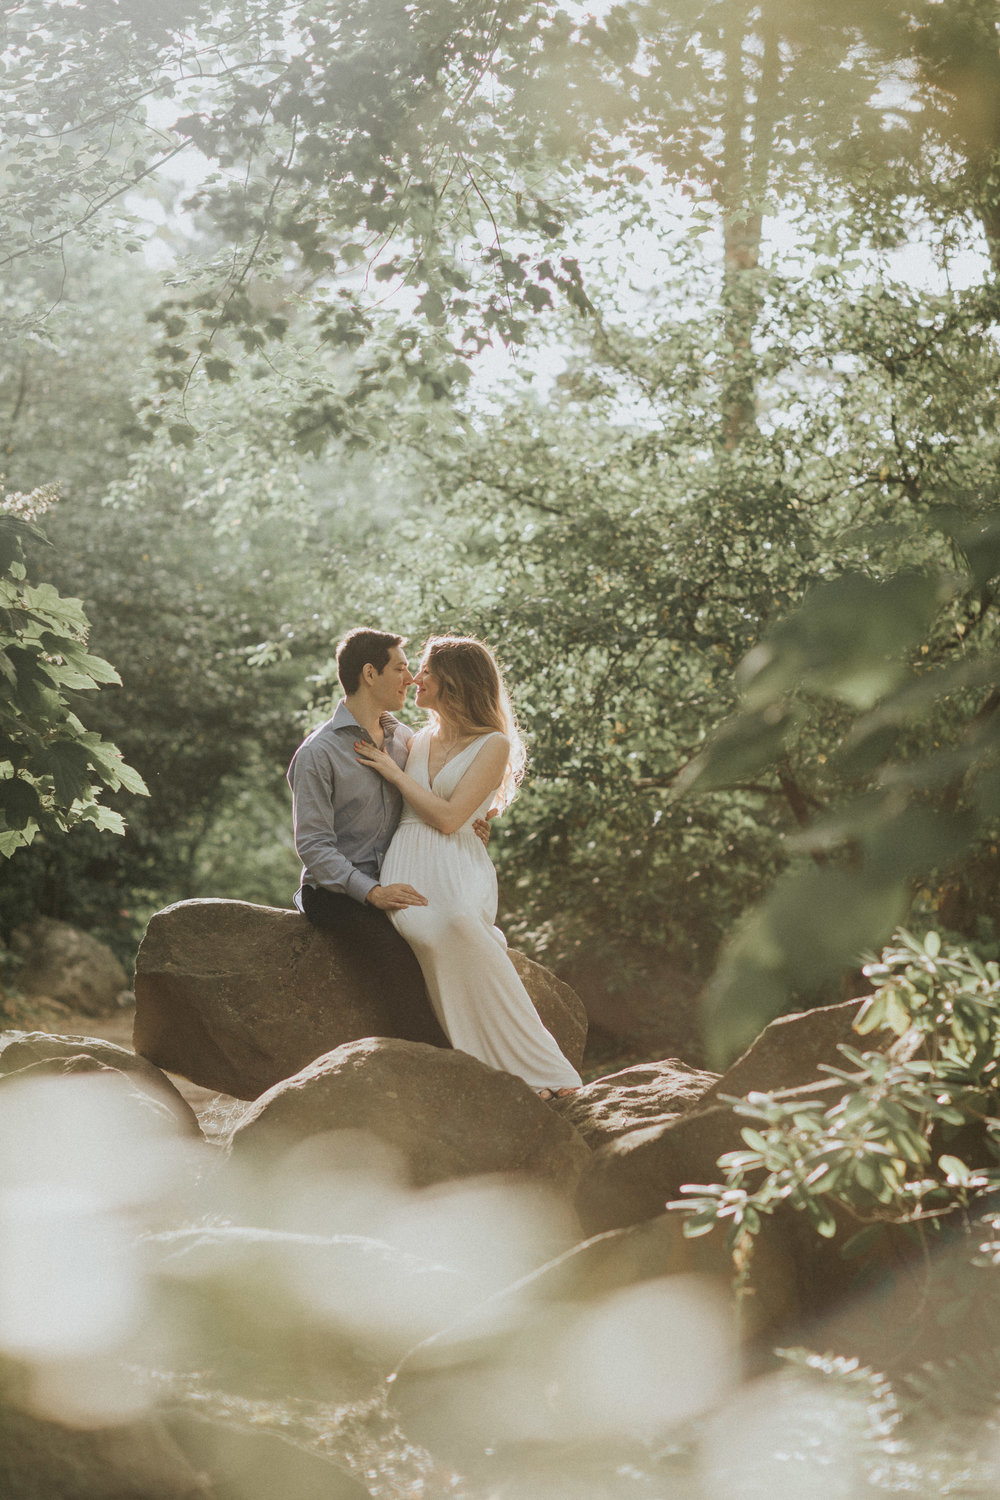 William Hendra Photography Sayen Gardens Engagement Session-12.jpg